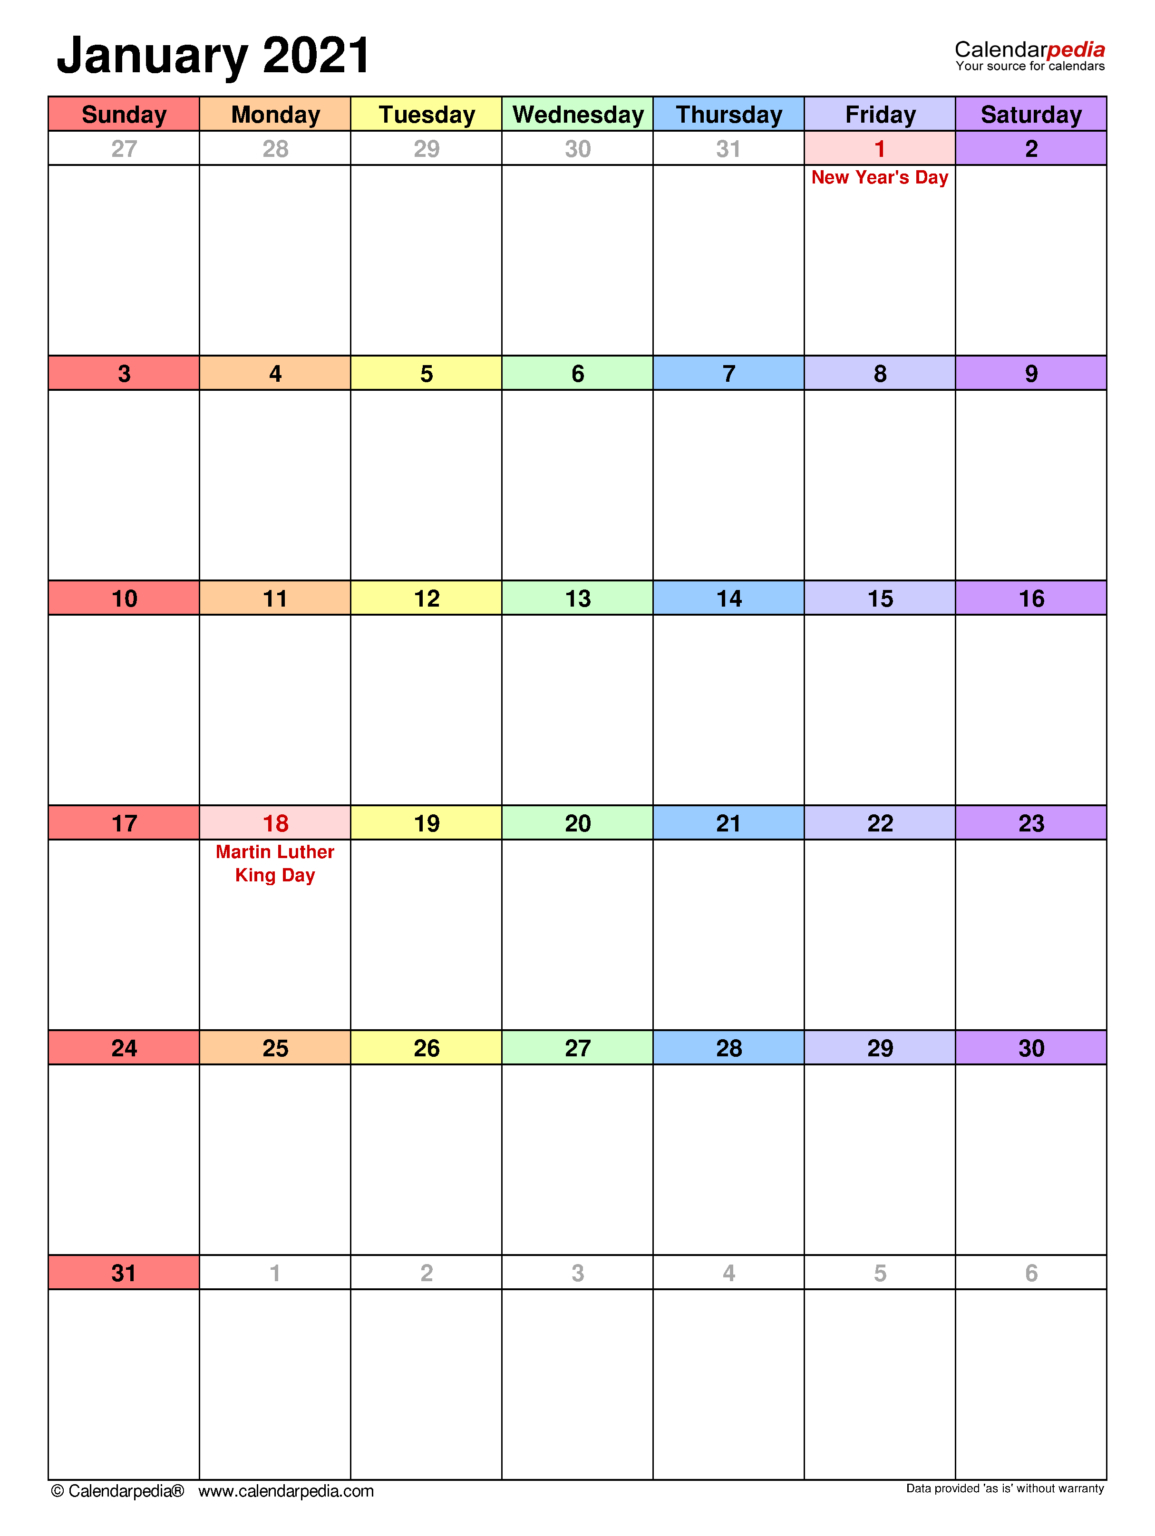 January 2021 Calendar | Templates For Word, Excel And Pdf regarding Shift Schedule 2021